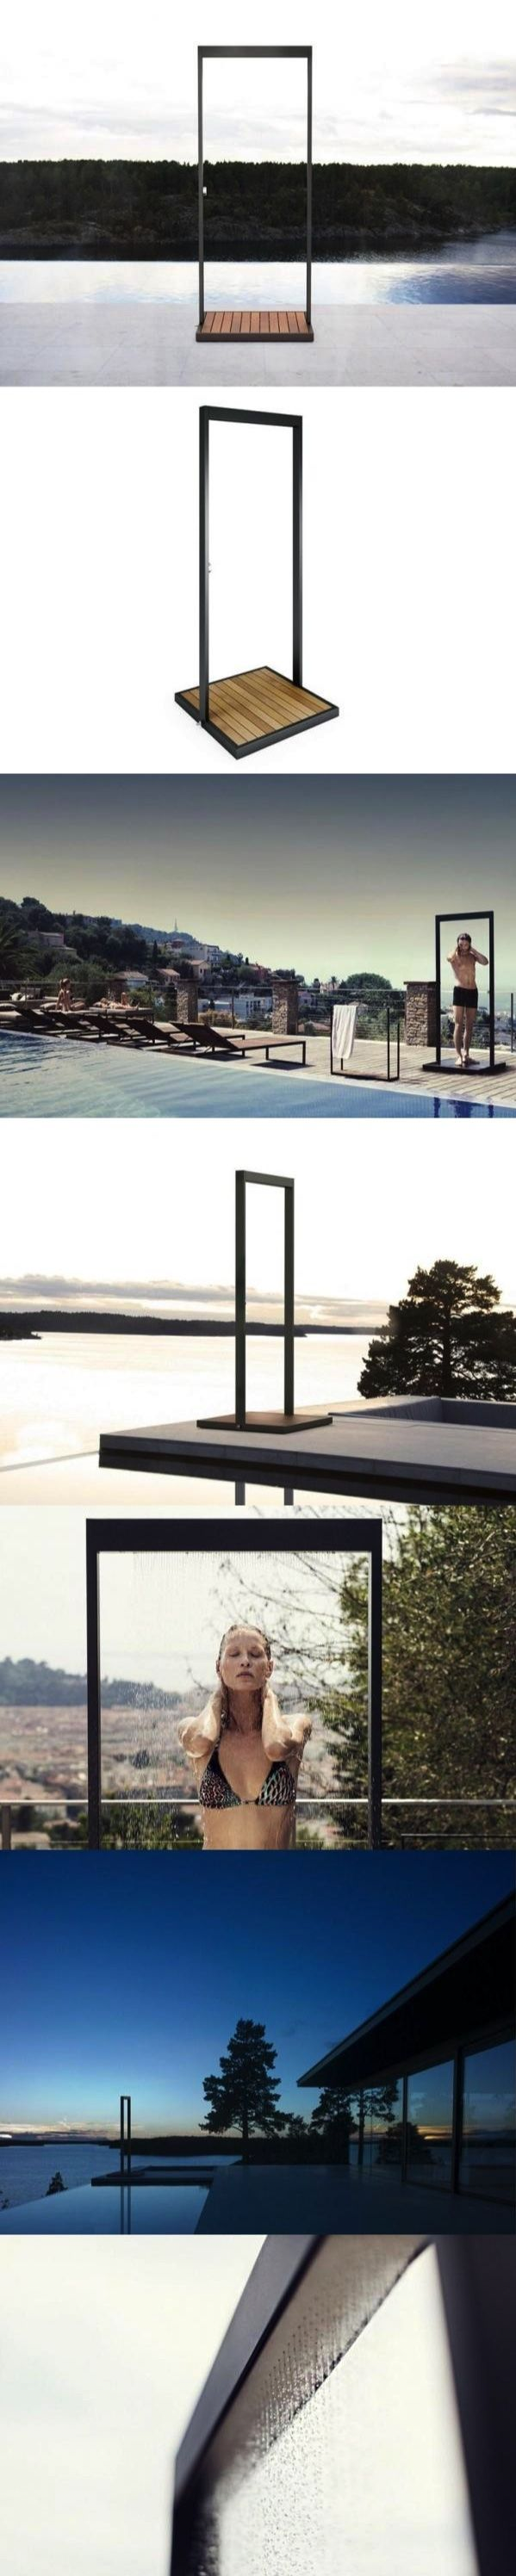 GARDEN | Outdoor shower Iron outdoor shower , design by BRDA - BROBERG & RIDDERSTRÅLE Outdoor shower. The pool area or the outdoor lounge, requires a stylish shower. Equipped with a baseplate made of beautiful teak. Lovely rain effect from the perforated overlying profile. Easy to connect via standard connection. Measurements 85 x 85 x 214 cm, Weight: 47,7kg Material Teak, Stainless steel Colors Anthracite Further info from manufacturer on GARDEN | Outdoor shower